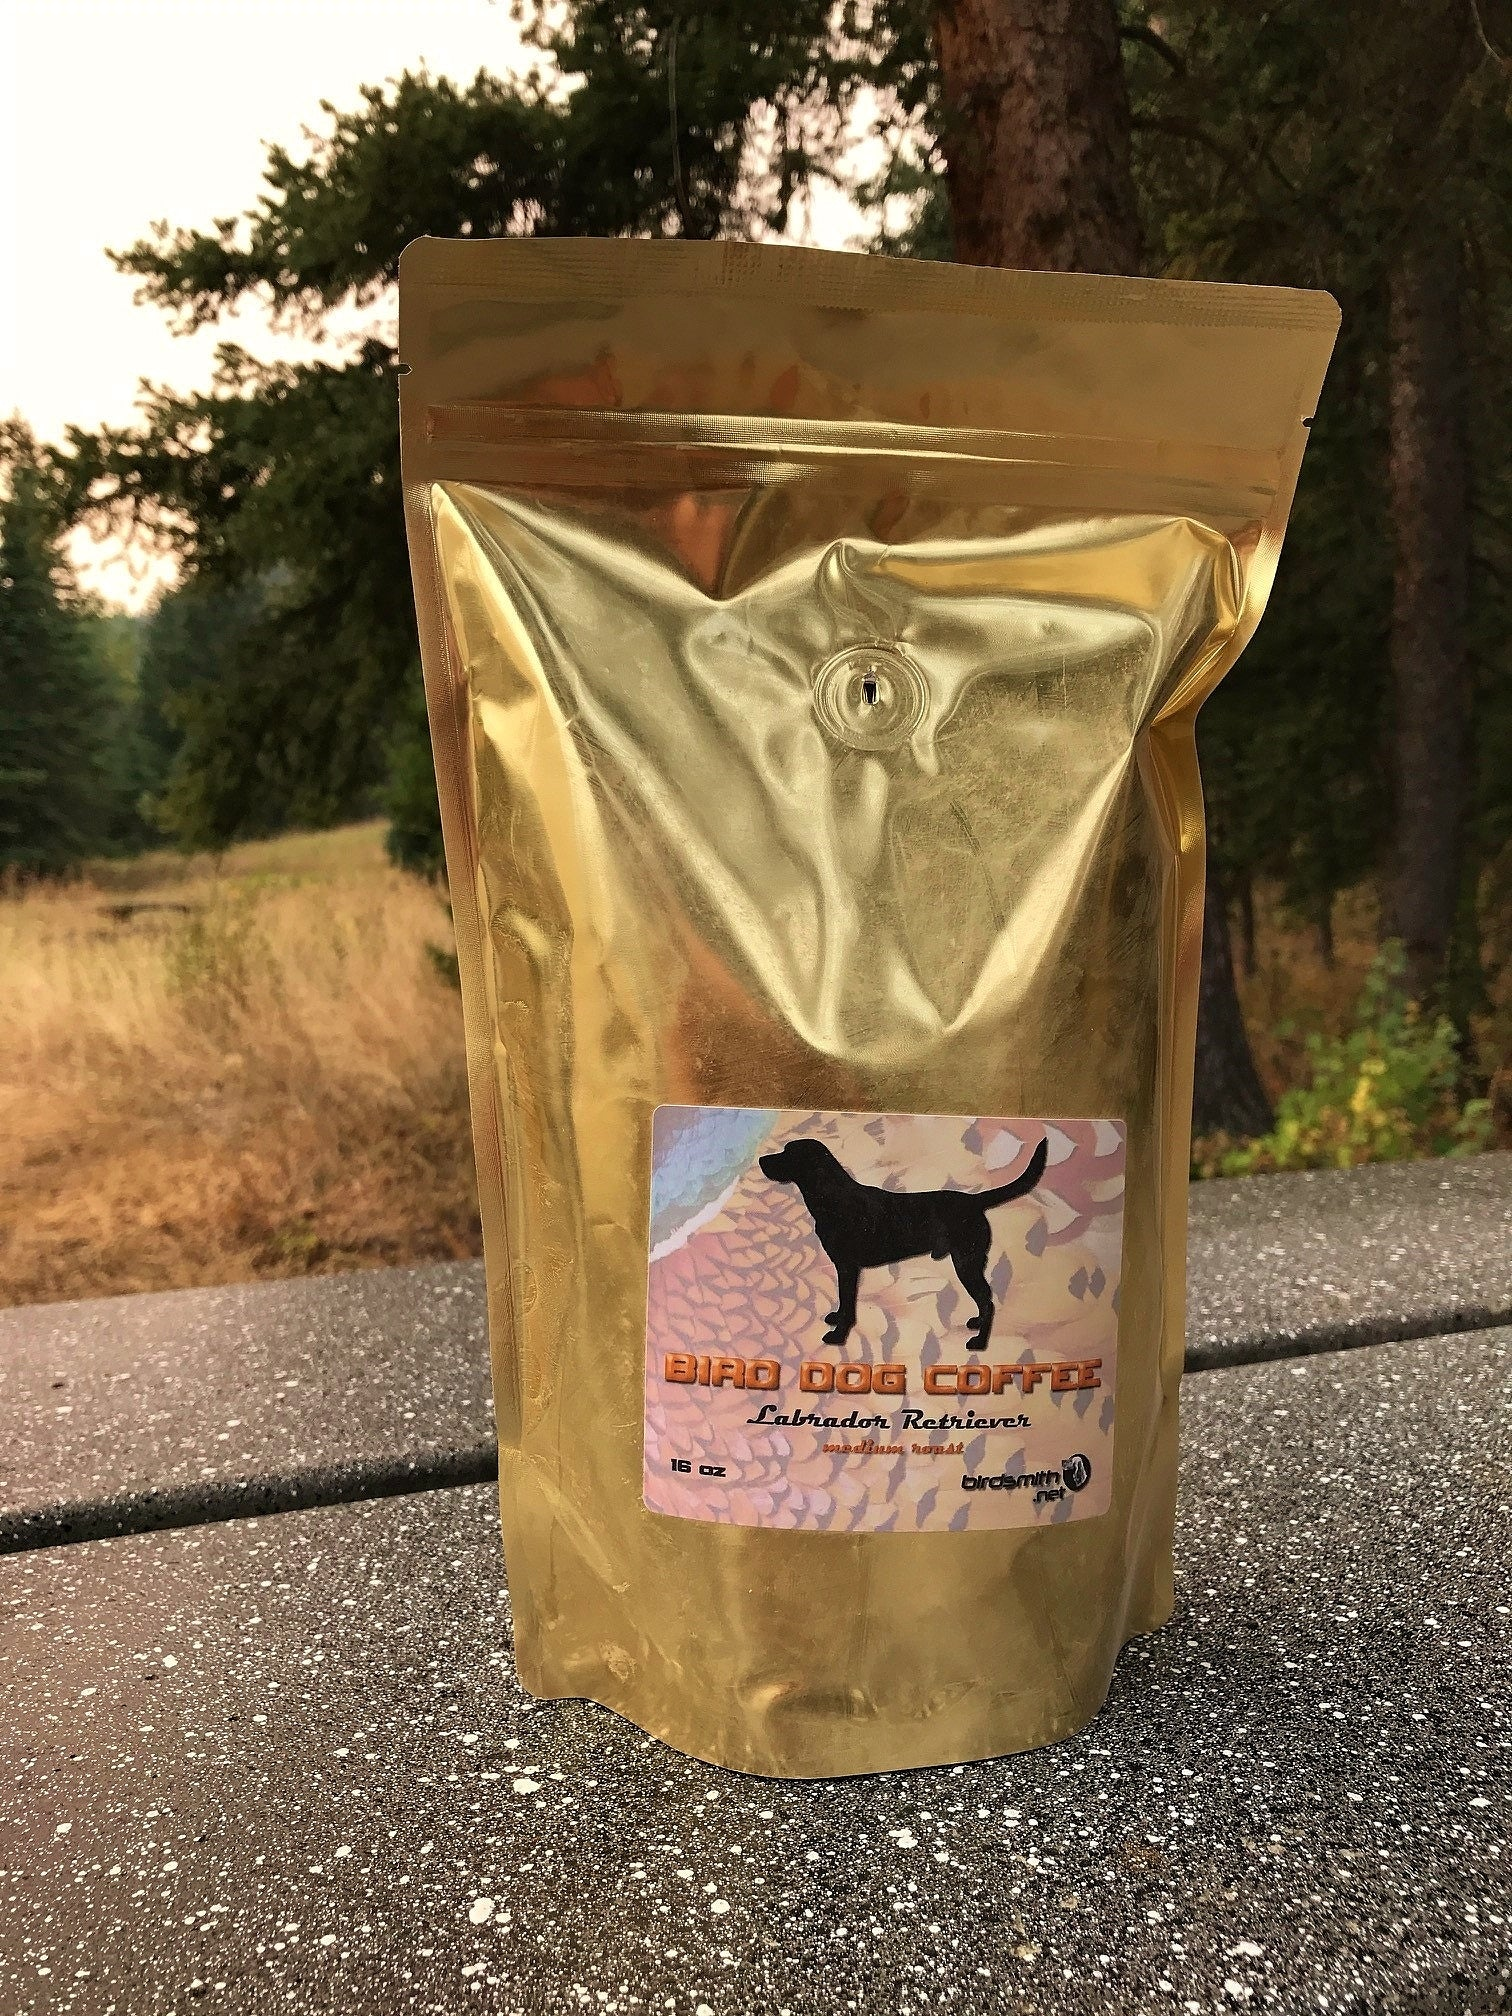 BIRD DOG COFFEE - Labrador Whole Bean